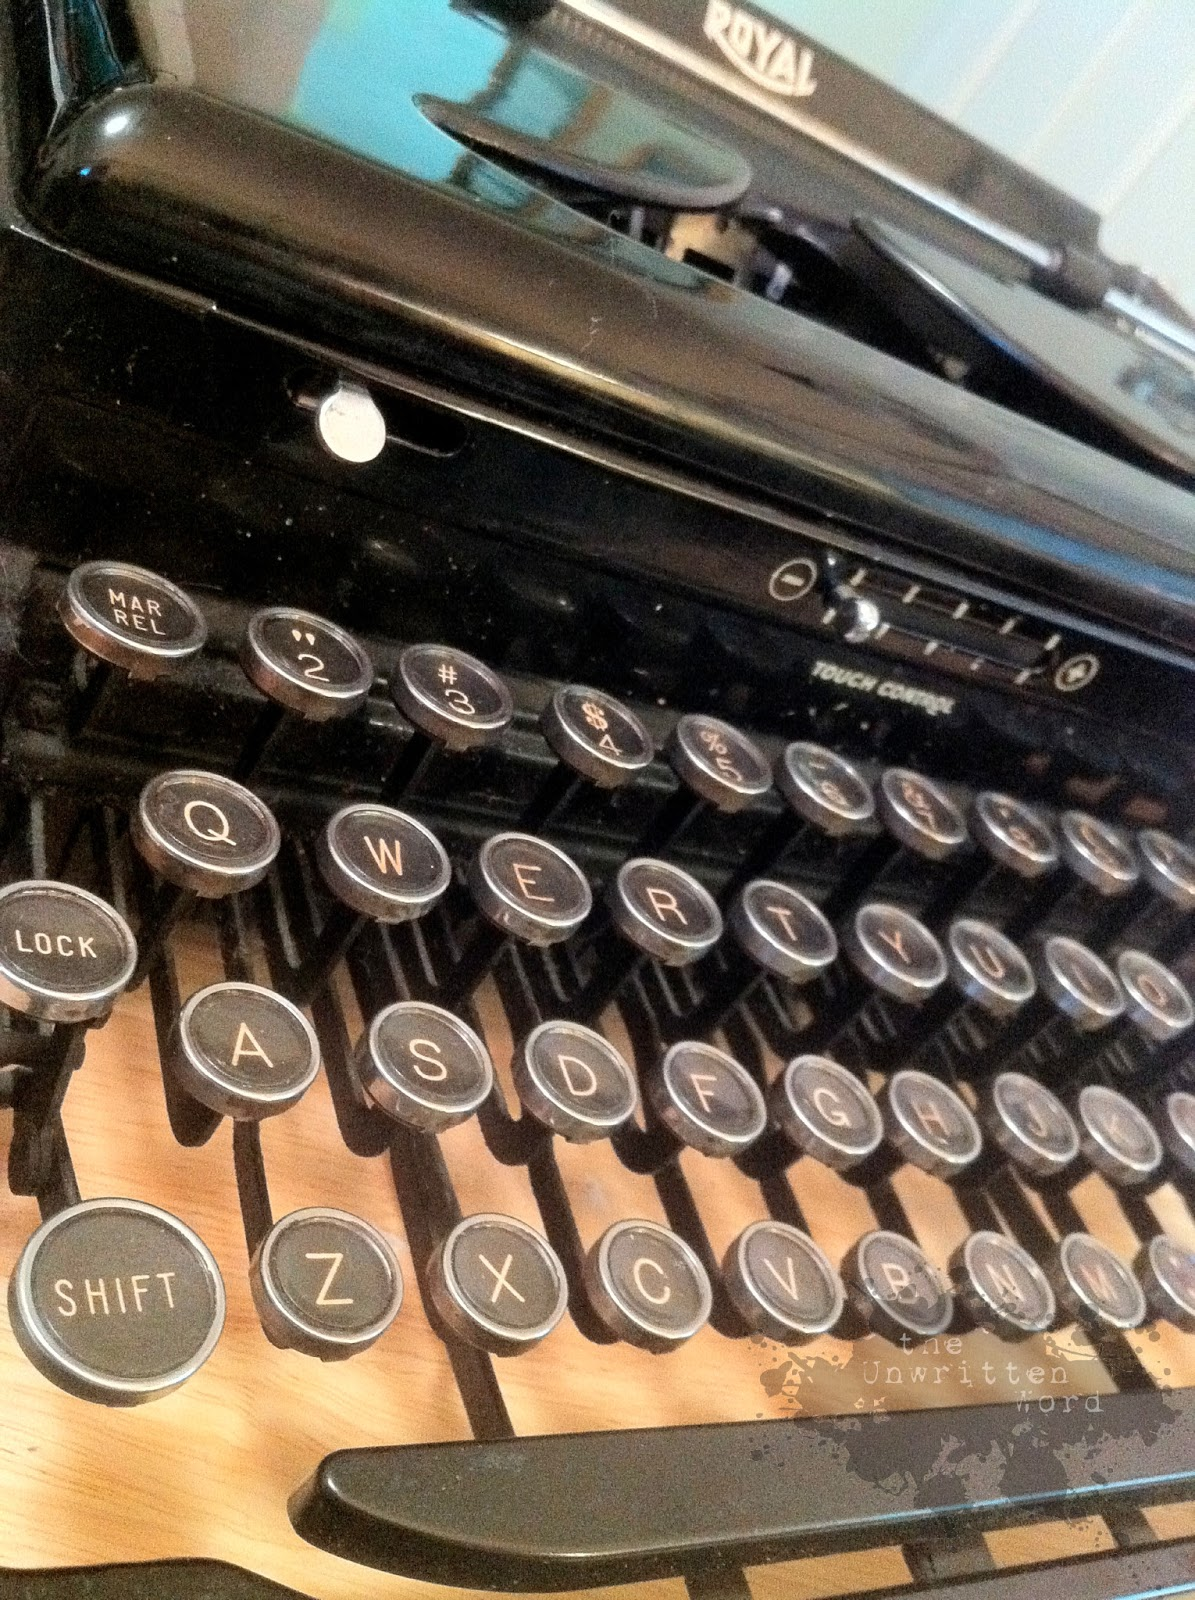 The Unwritten Word: Tools of the Trade: Rattletrap (the) Typewriter